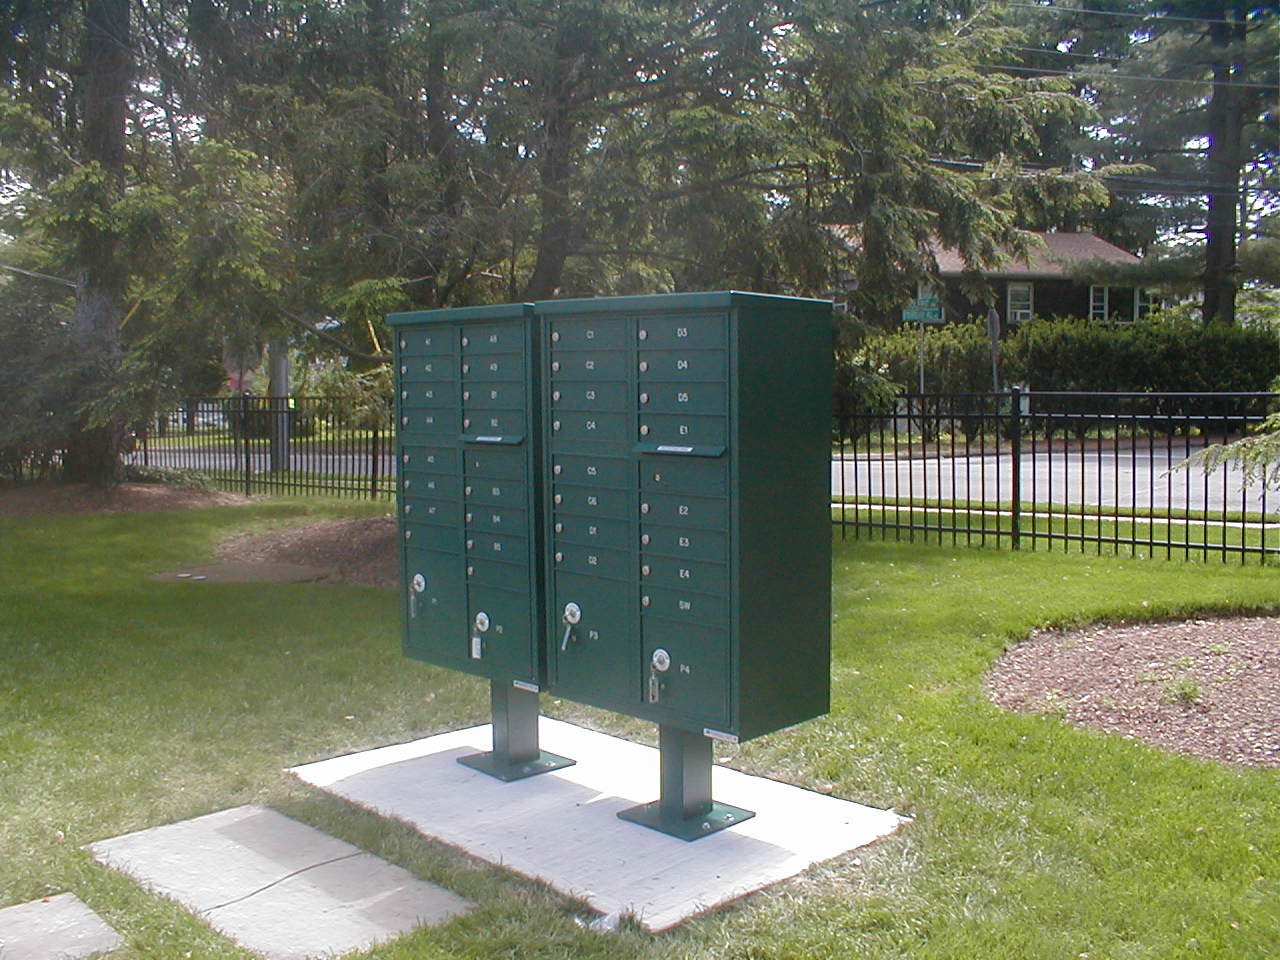 Commercial Mailboxes Ontario Rebuilding Place In The Urban Space Printing Services At Mail